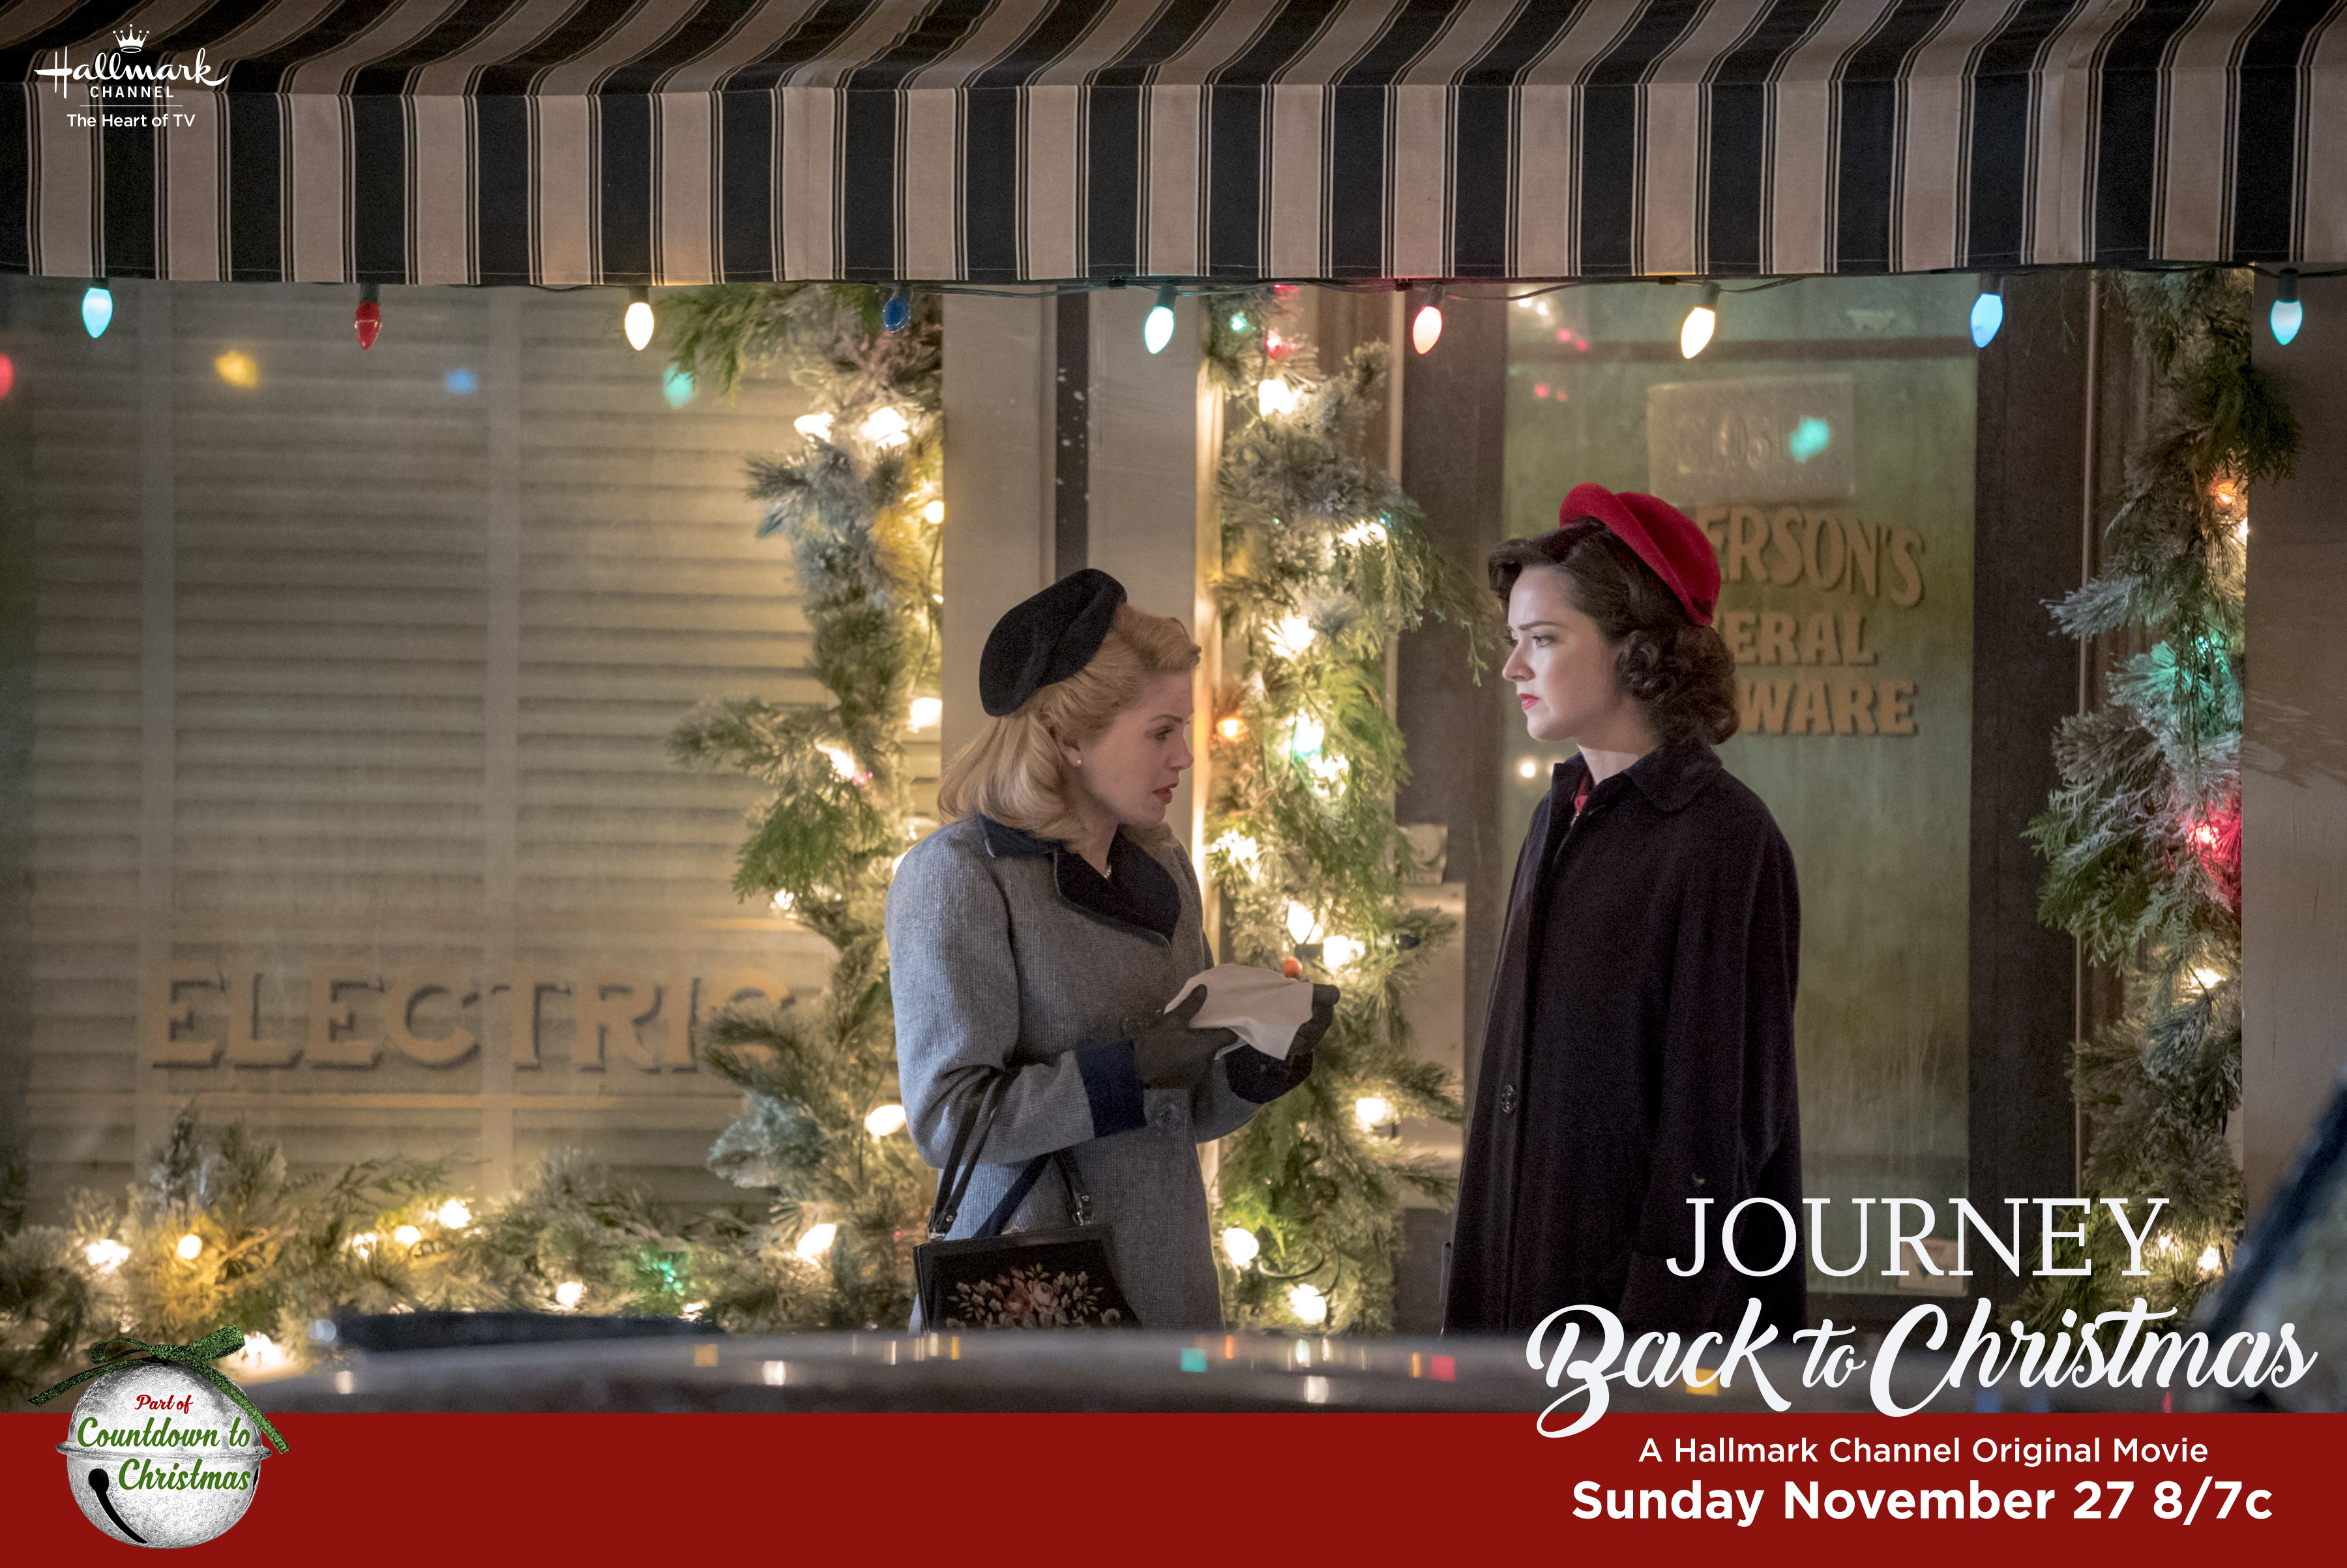 WWII has ended and Hanna is still grieving over her husband's disappearance. When the Christmas Comet appears for the first time in 70 years, Hanna is caught in a terrible storm and knocked unconscious. When she wakes up, she's in 2016. A handsome policeman comes to her rescue and offers to let her stay at his family's farmhouse. Despite suspicions about her past, the family takes her in. Hanna looks to unravel the truth about what happened to her and in doing so, discovers the small kindnesses she did in her time have reverberated to the present. She helps Jake and his family appreciate the magic of Christmas and will find her way back home and get the one Christmas gift she could only dream of, her husband.  Photo:Candace Cameron Bure,  Credit: Copyright 2016 Crown Media United States LLC/Photographer: Allen Fraser